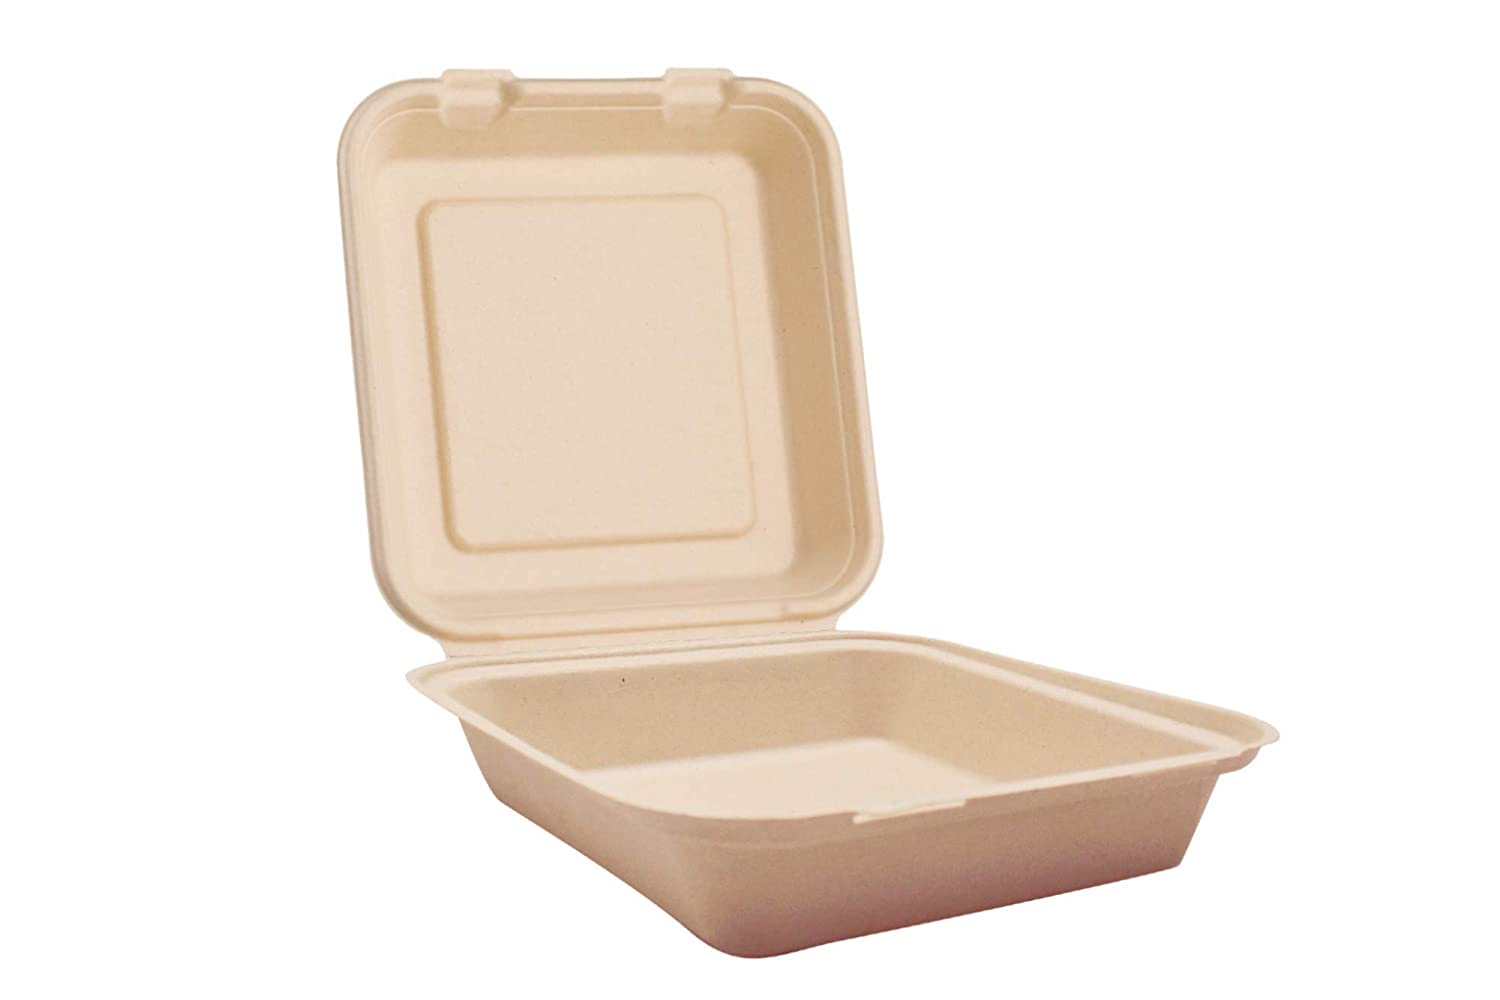 "Harvest Pack 8 X 8"" inch Disposable Eco Compostable Clamshell Hinged Food Container Boxes, Single Compartment [50 Count]"